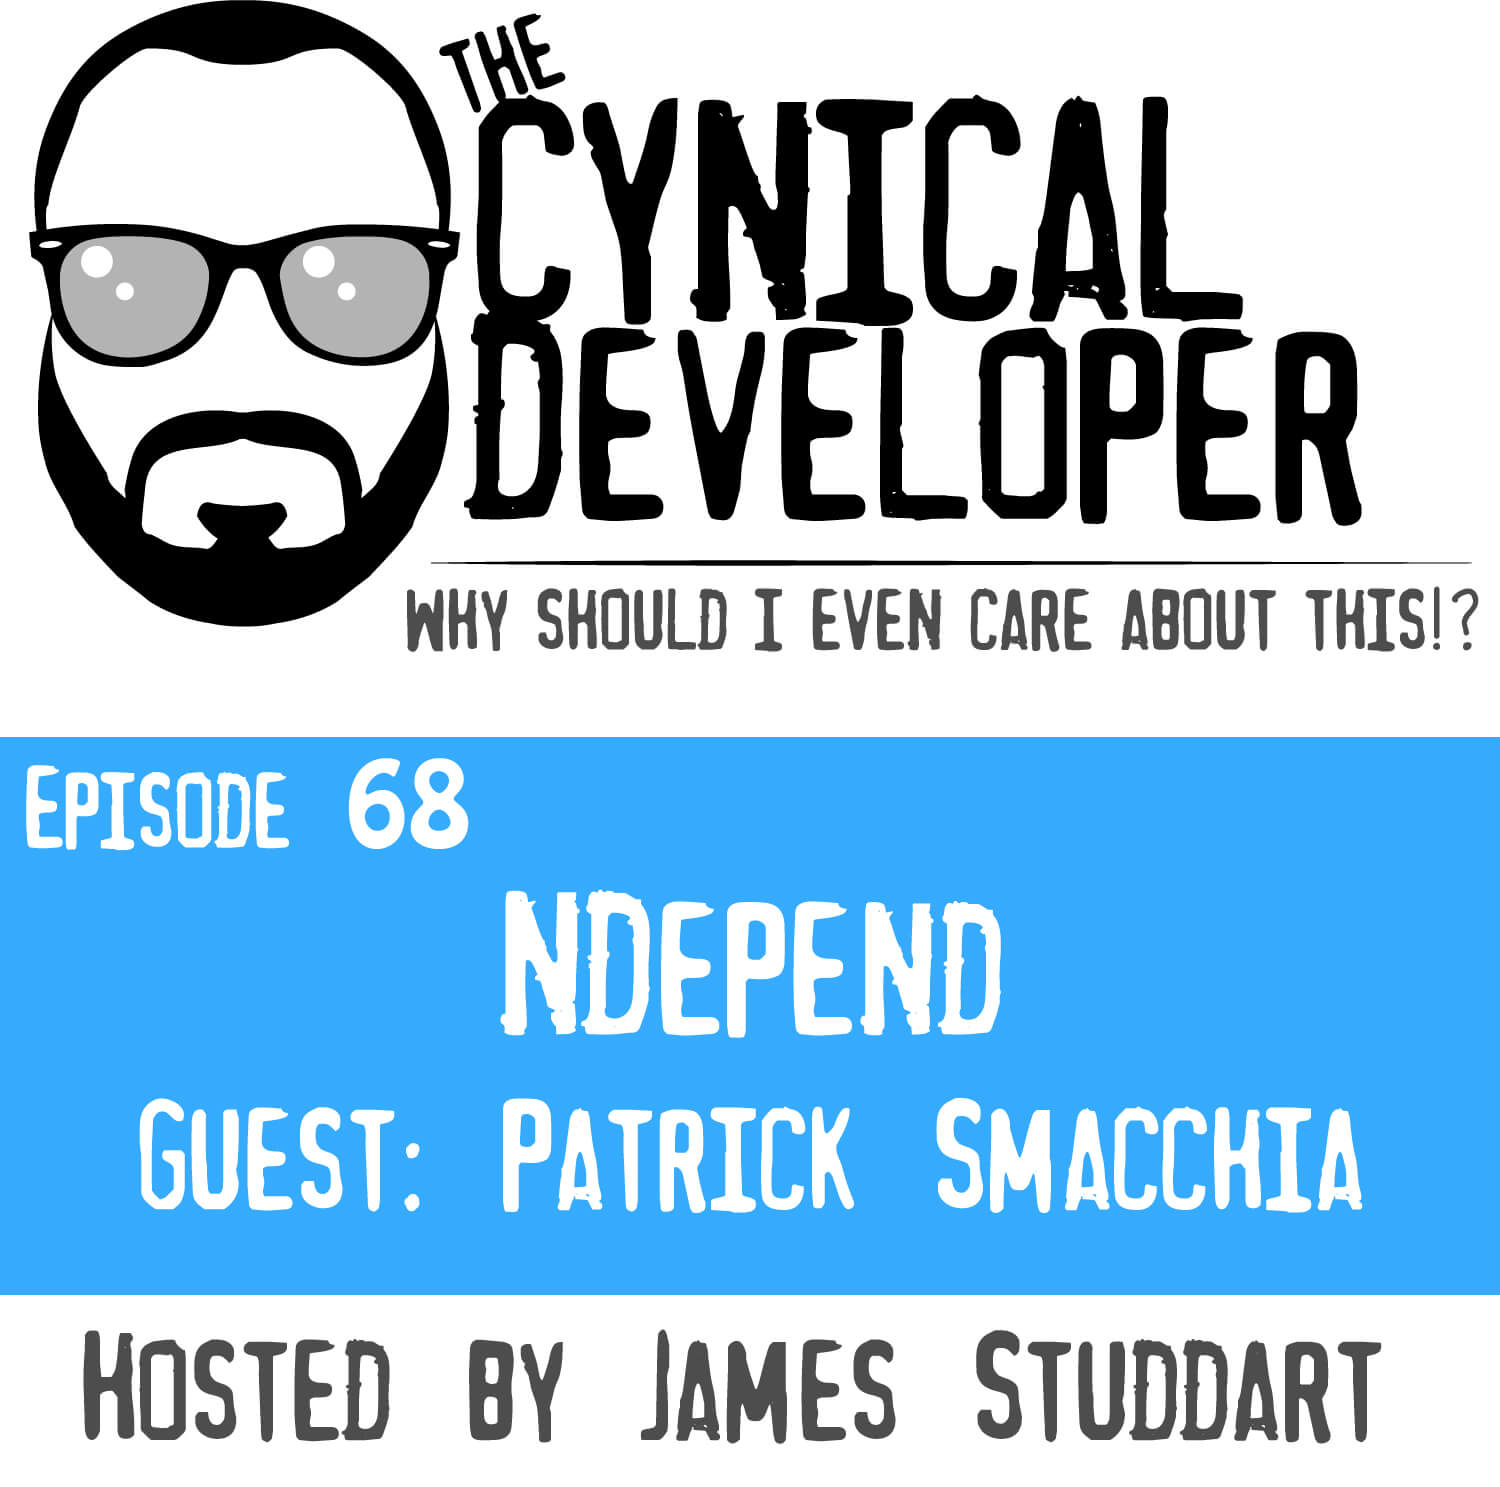 Episode 68 - NDepend